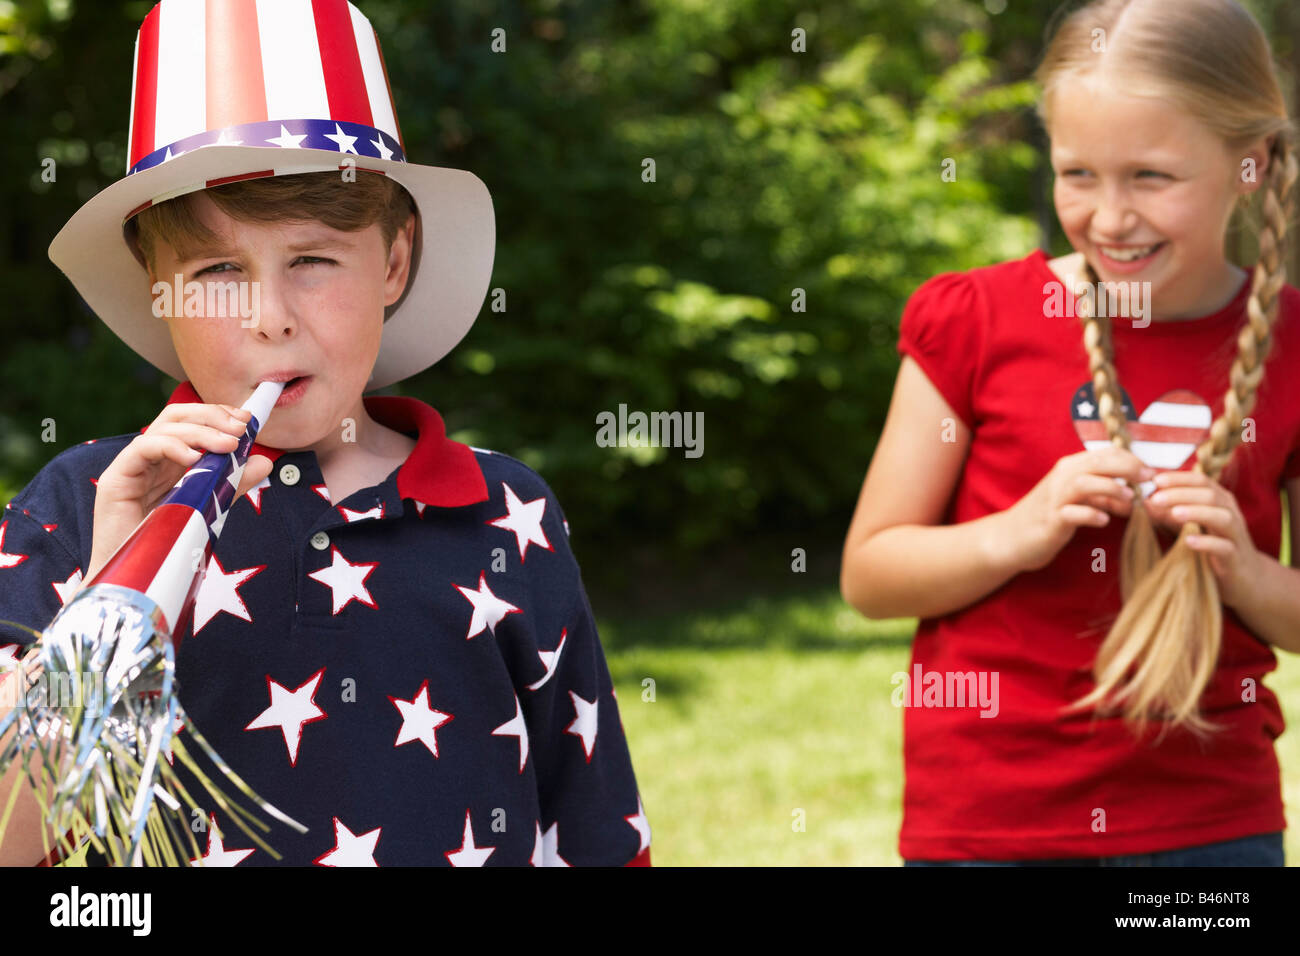 Portrait of Boy Wearing Stars and Stripes Top and Hat, Blowing Noisemaker Horn, Girl Watching Stock Photo